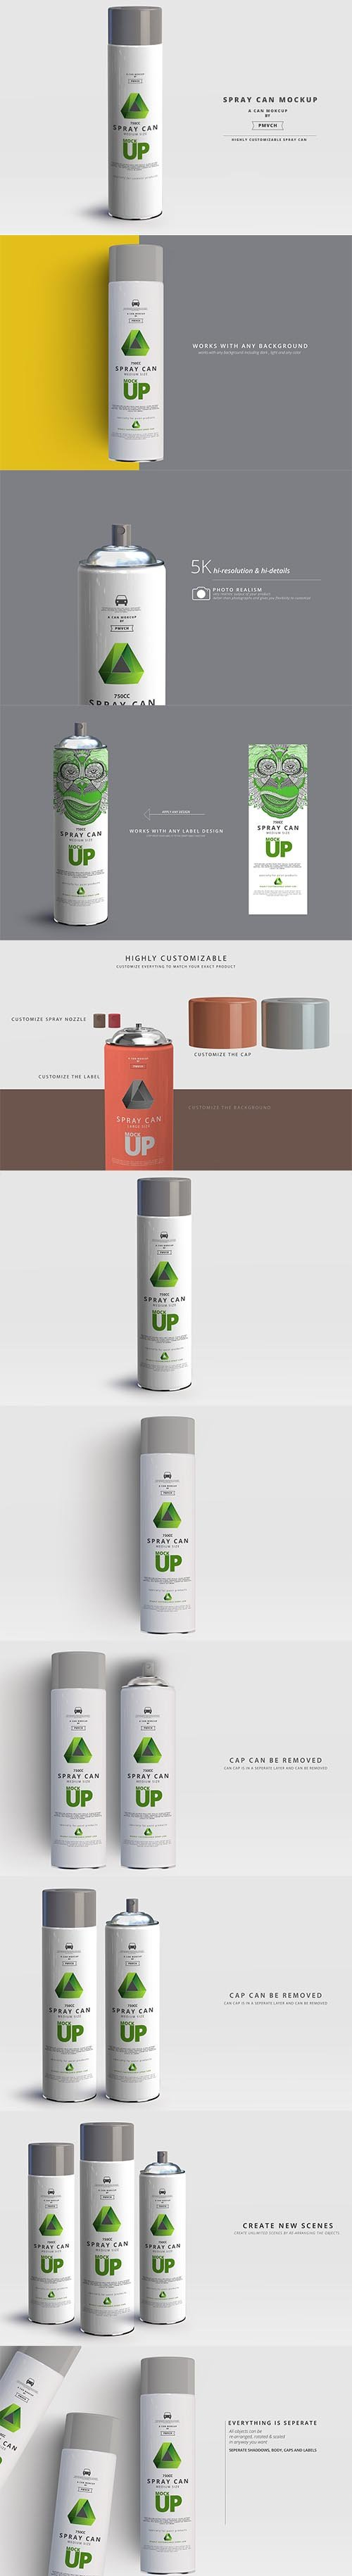 CreativeMarket - Spray Can Mockup - Large Size 2961965